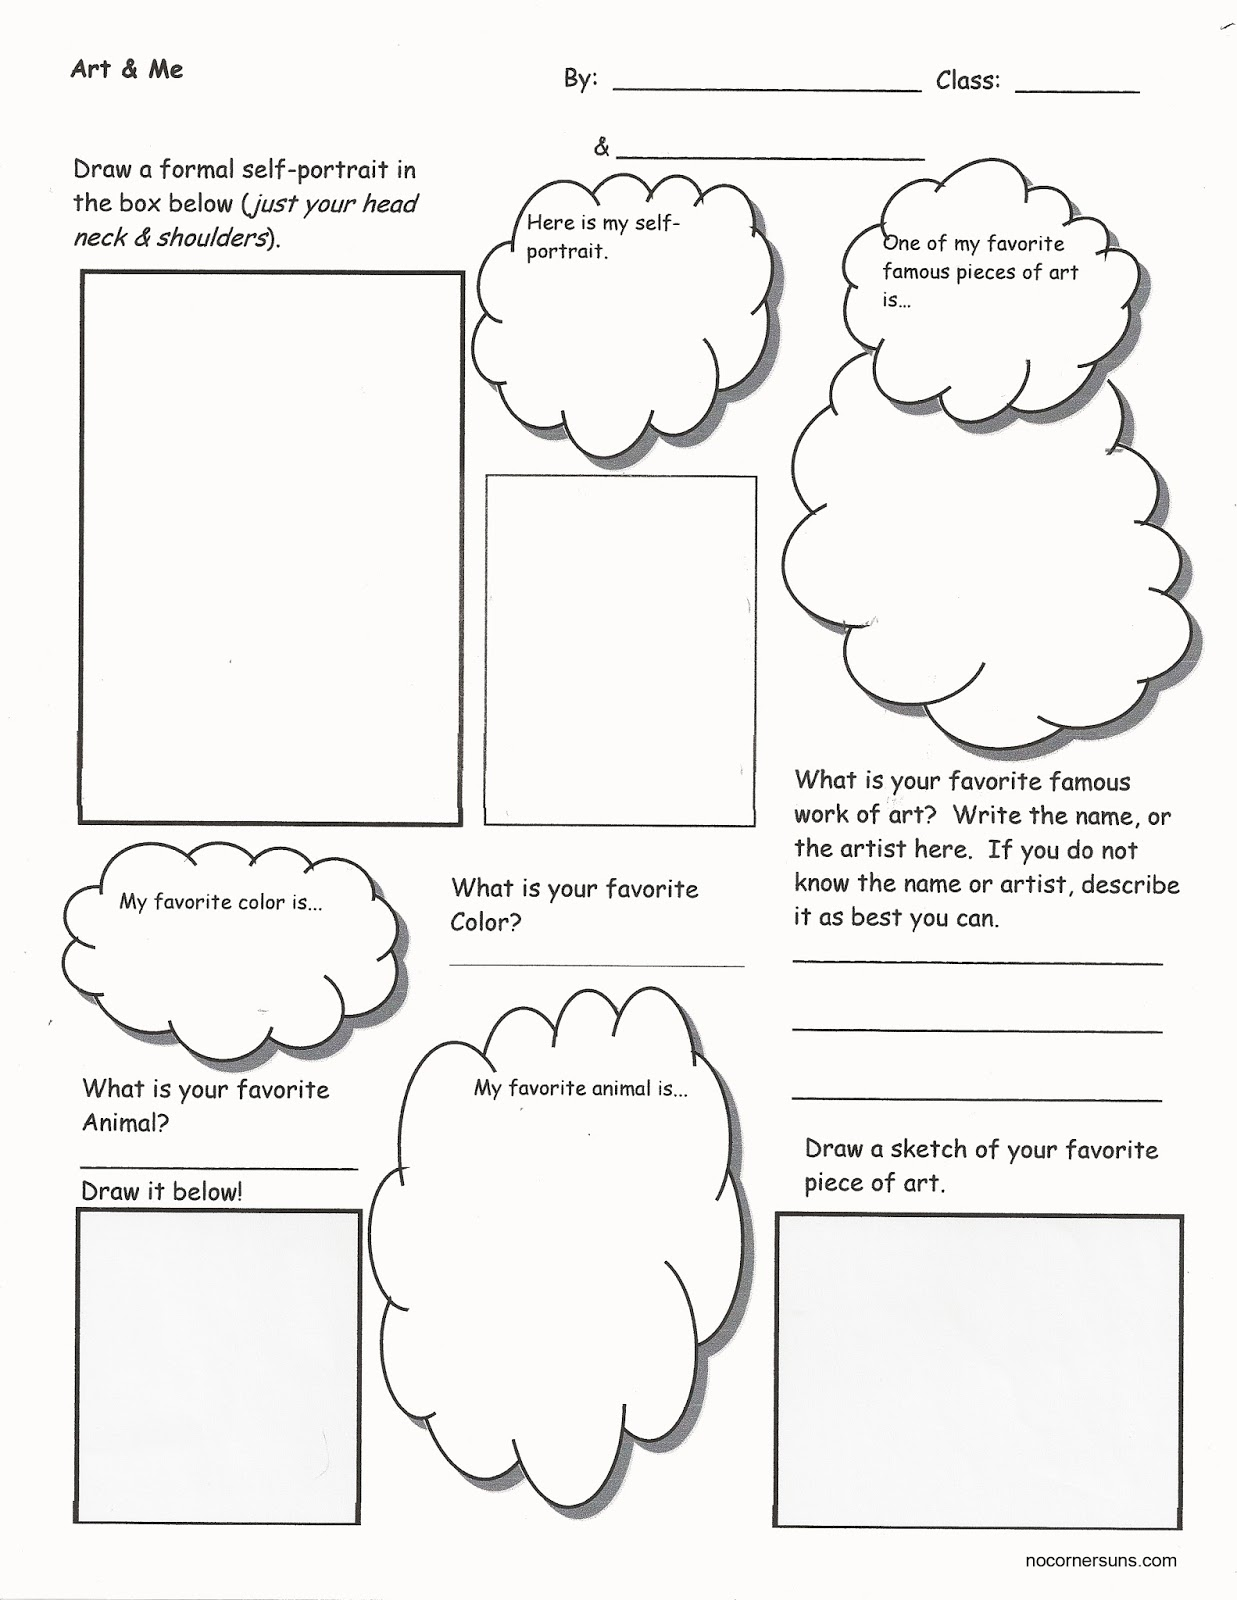 Getting To Know You Worksheets For Couples Pictures to Pin on – Getting to Know You Worksheets